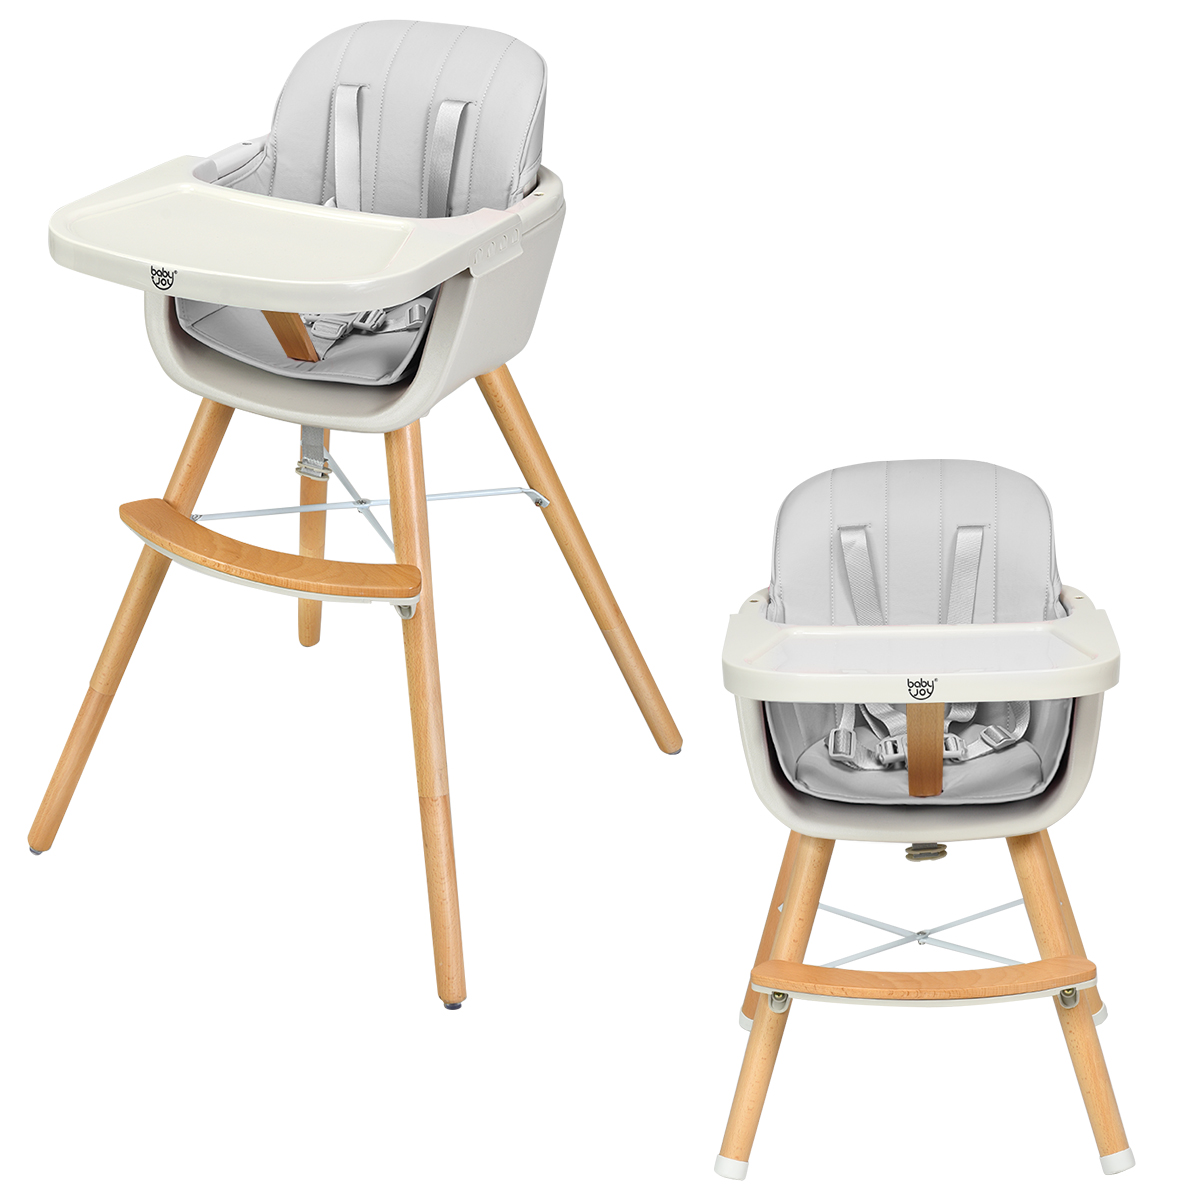 3 In 1 Convertible Wooden High Chair Baby Toddler Highchair W/ Cushion Gray